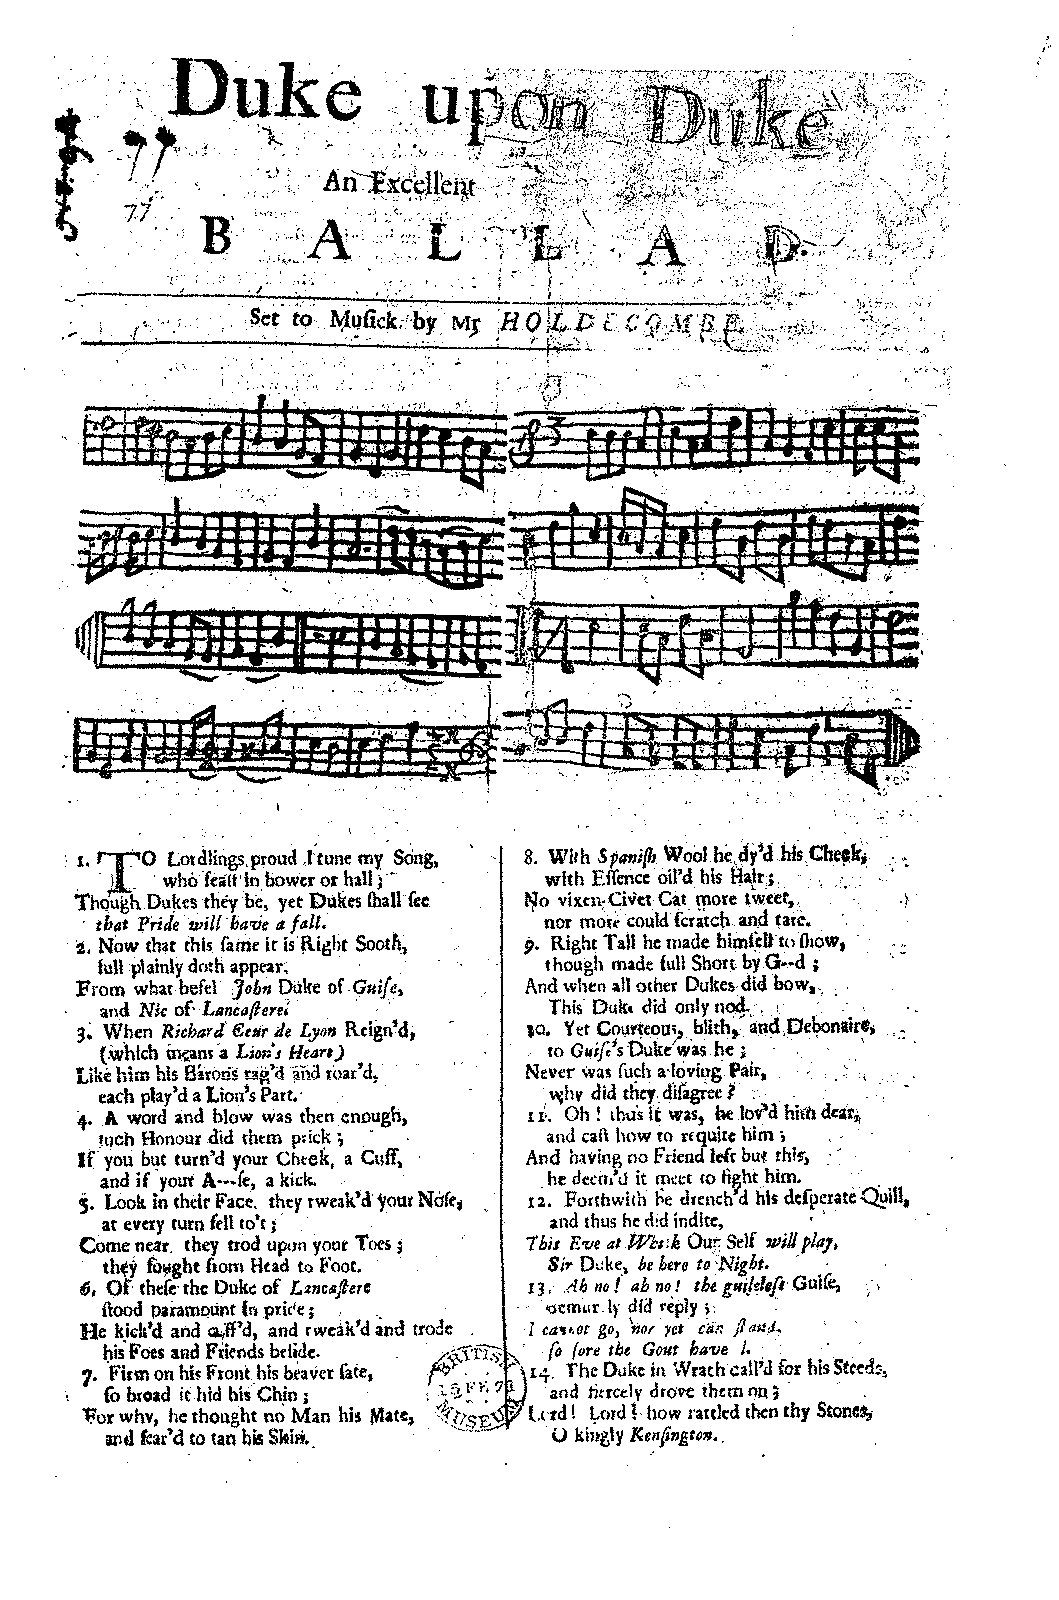 PMLP146697-holcombe duke upon duke ballad.pdf